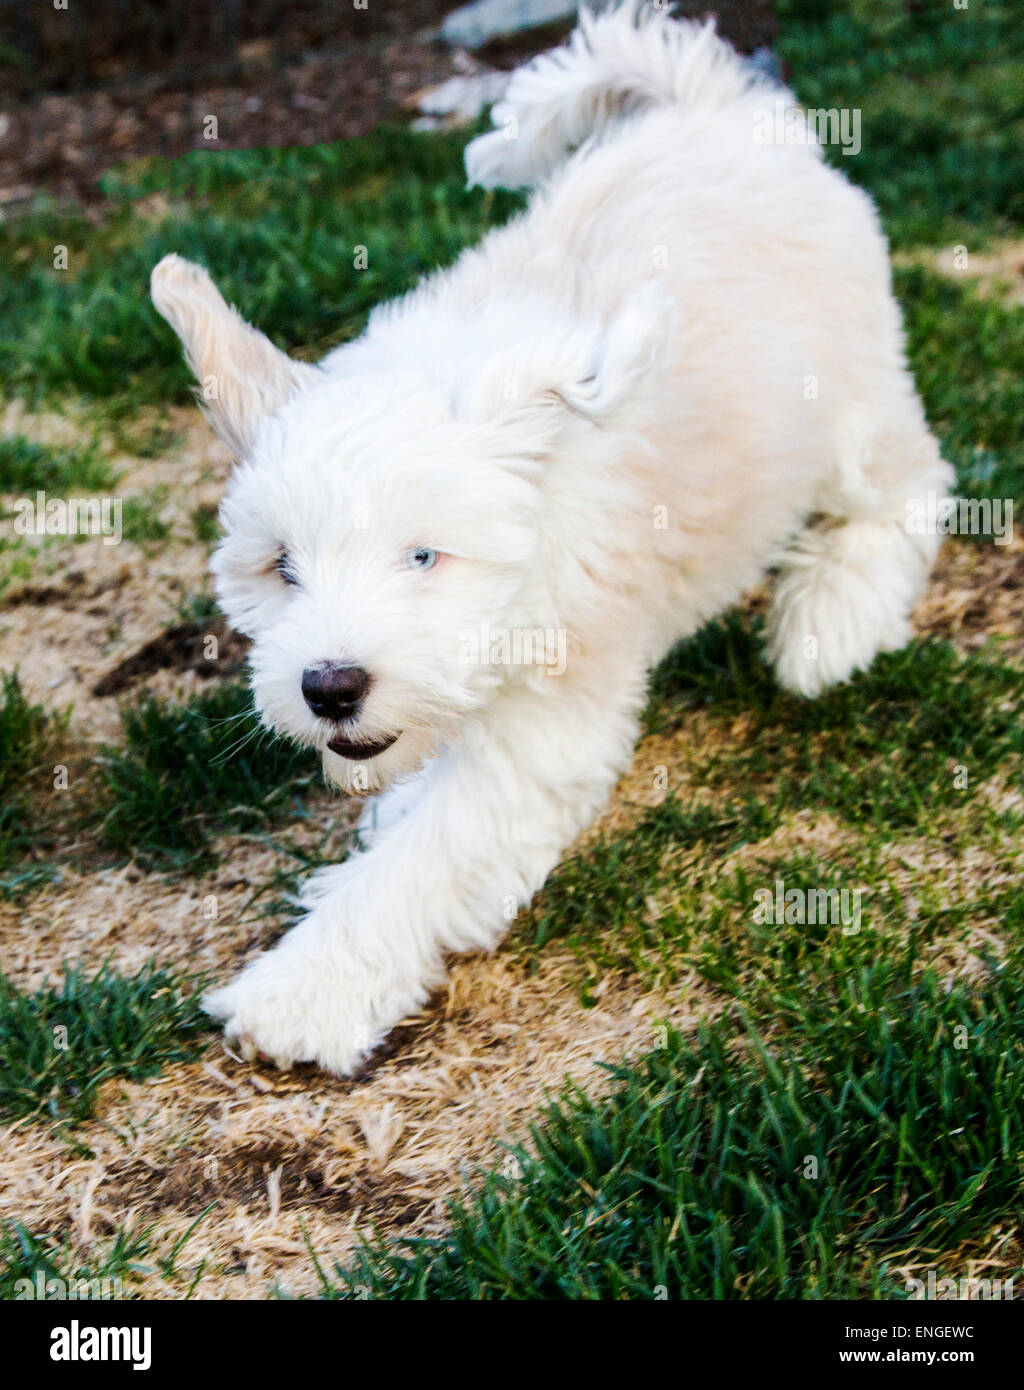 Tibetan terrier puppy playing in grassy garden - Stock Image